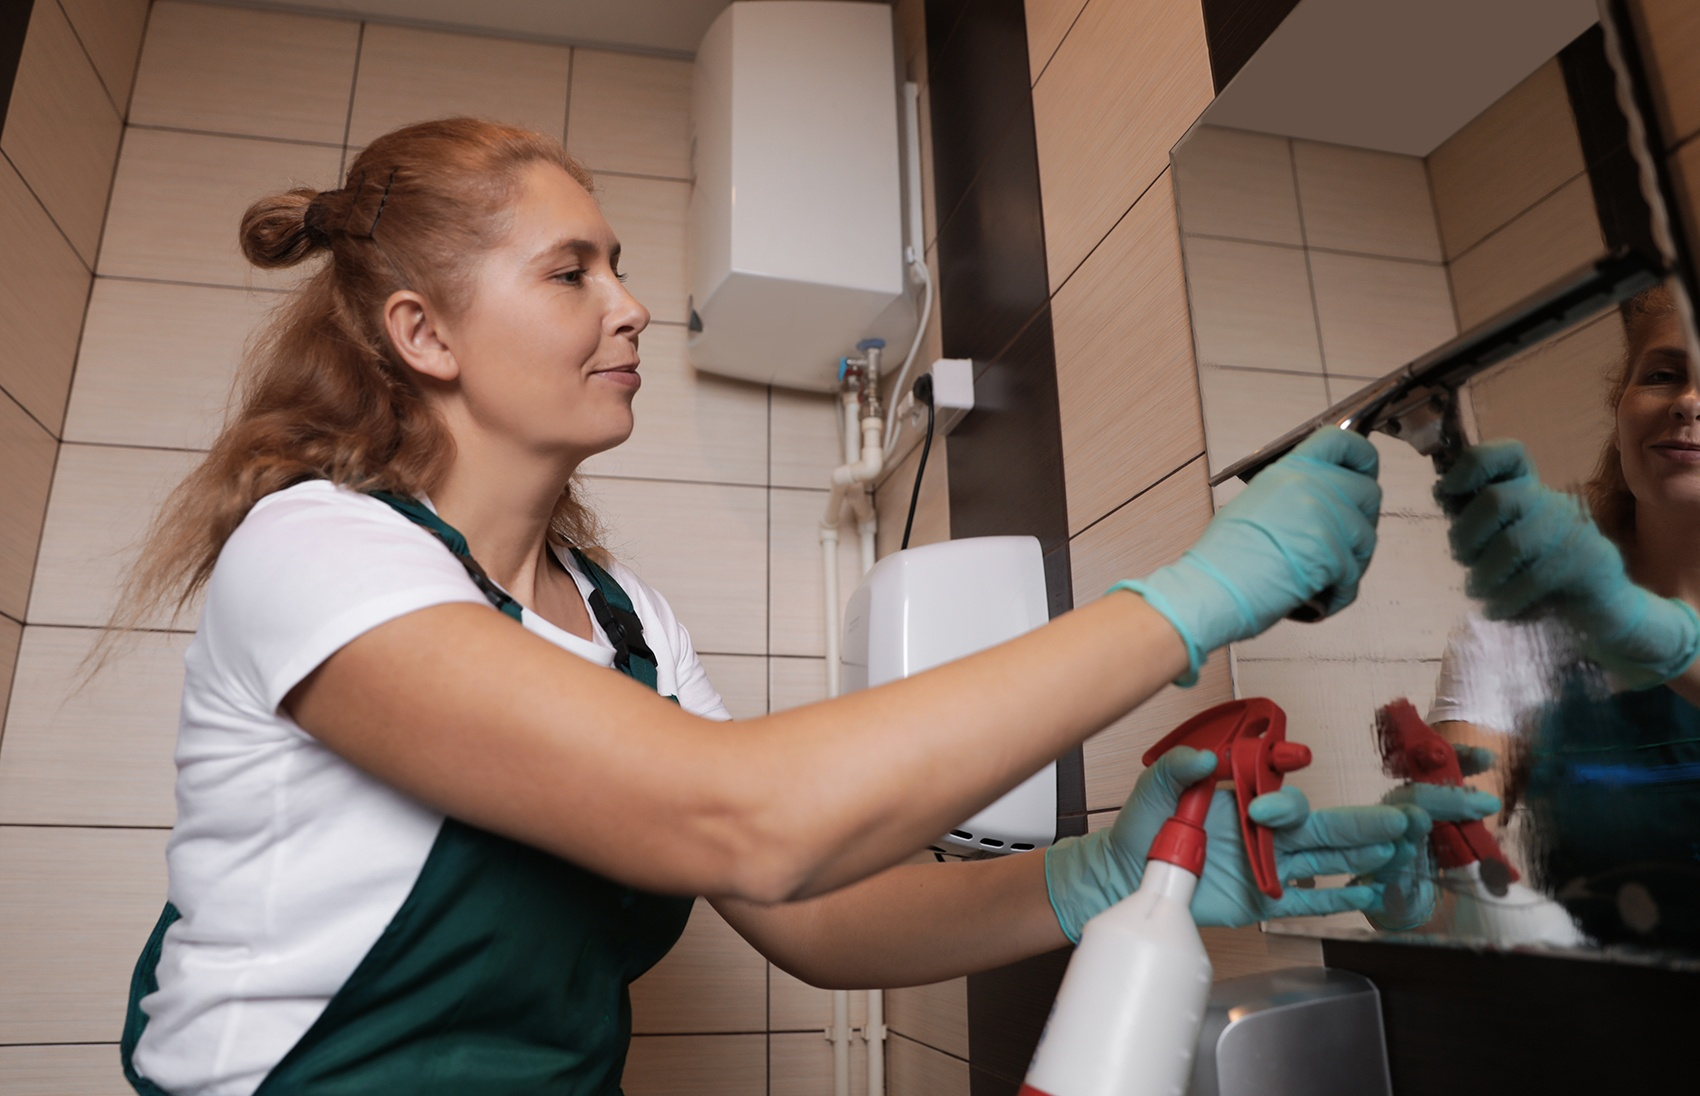 Decca Janitorial Day Porter Services for Thorough Commercial Cleaning, Disinfecting, and Sanitizing